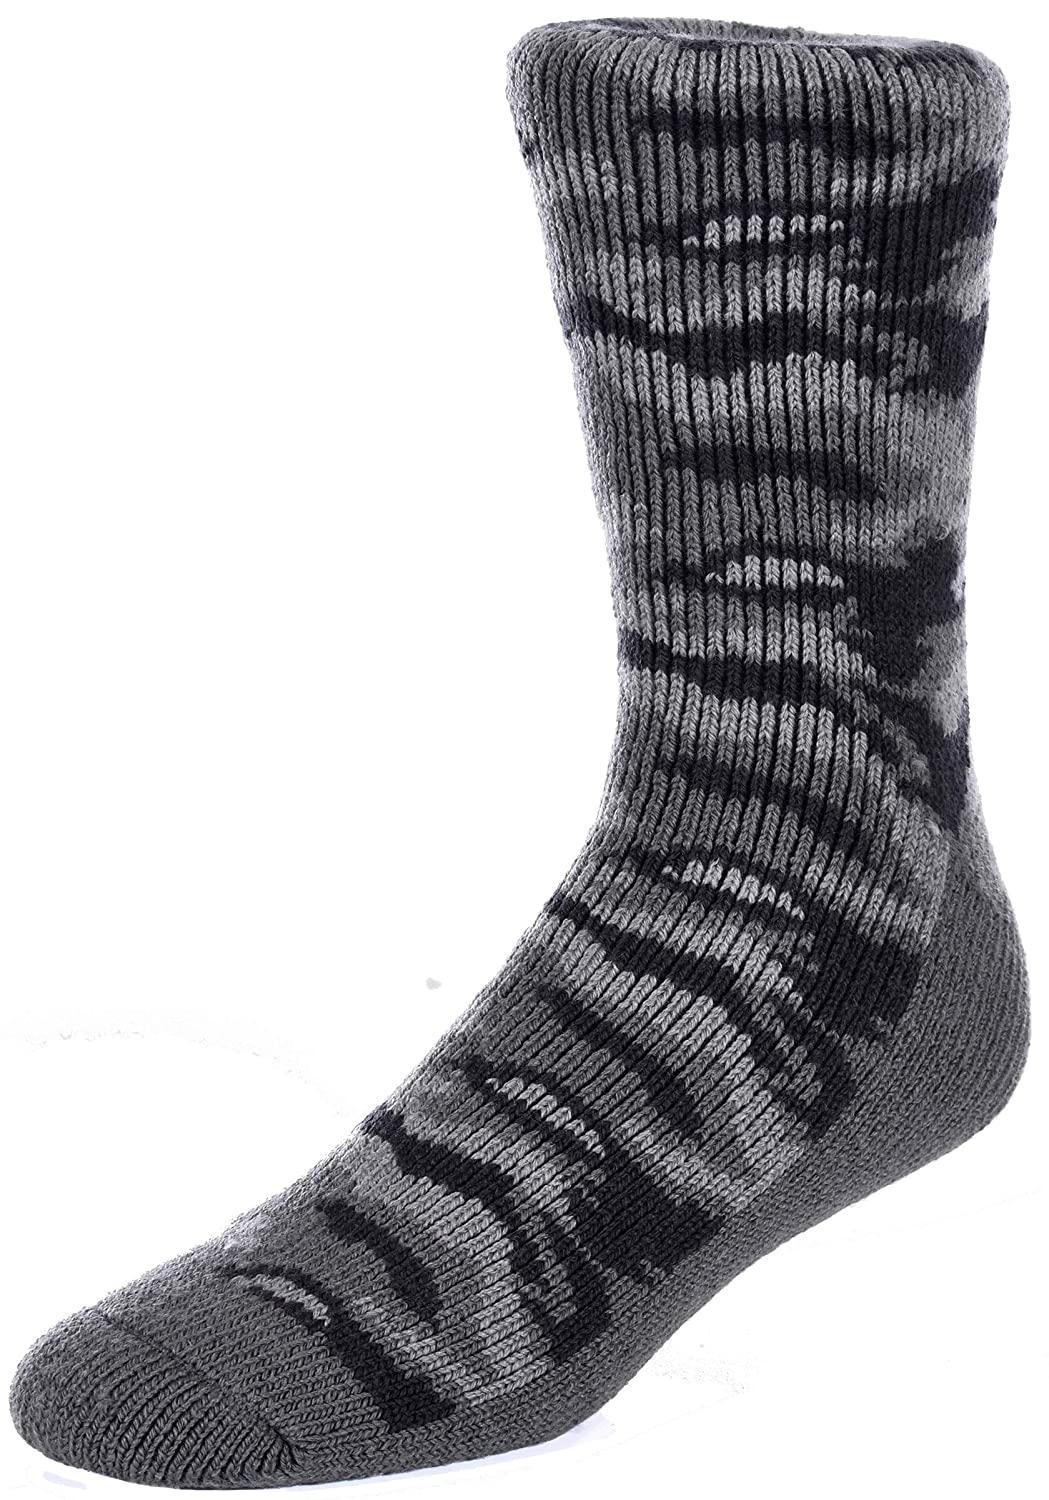 a05b51387 These men\'s Polar Extreme thermal camouflage pattern calf length socks are  the best helping you keep you feet warm and comfortable in all types of cold  ...